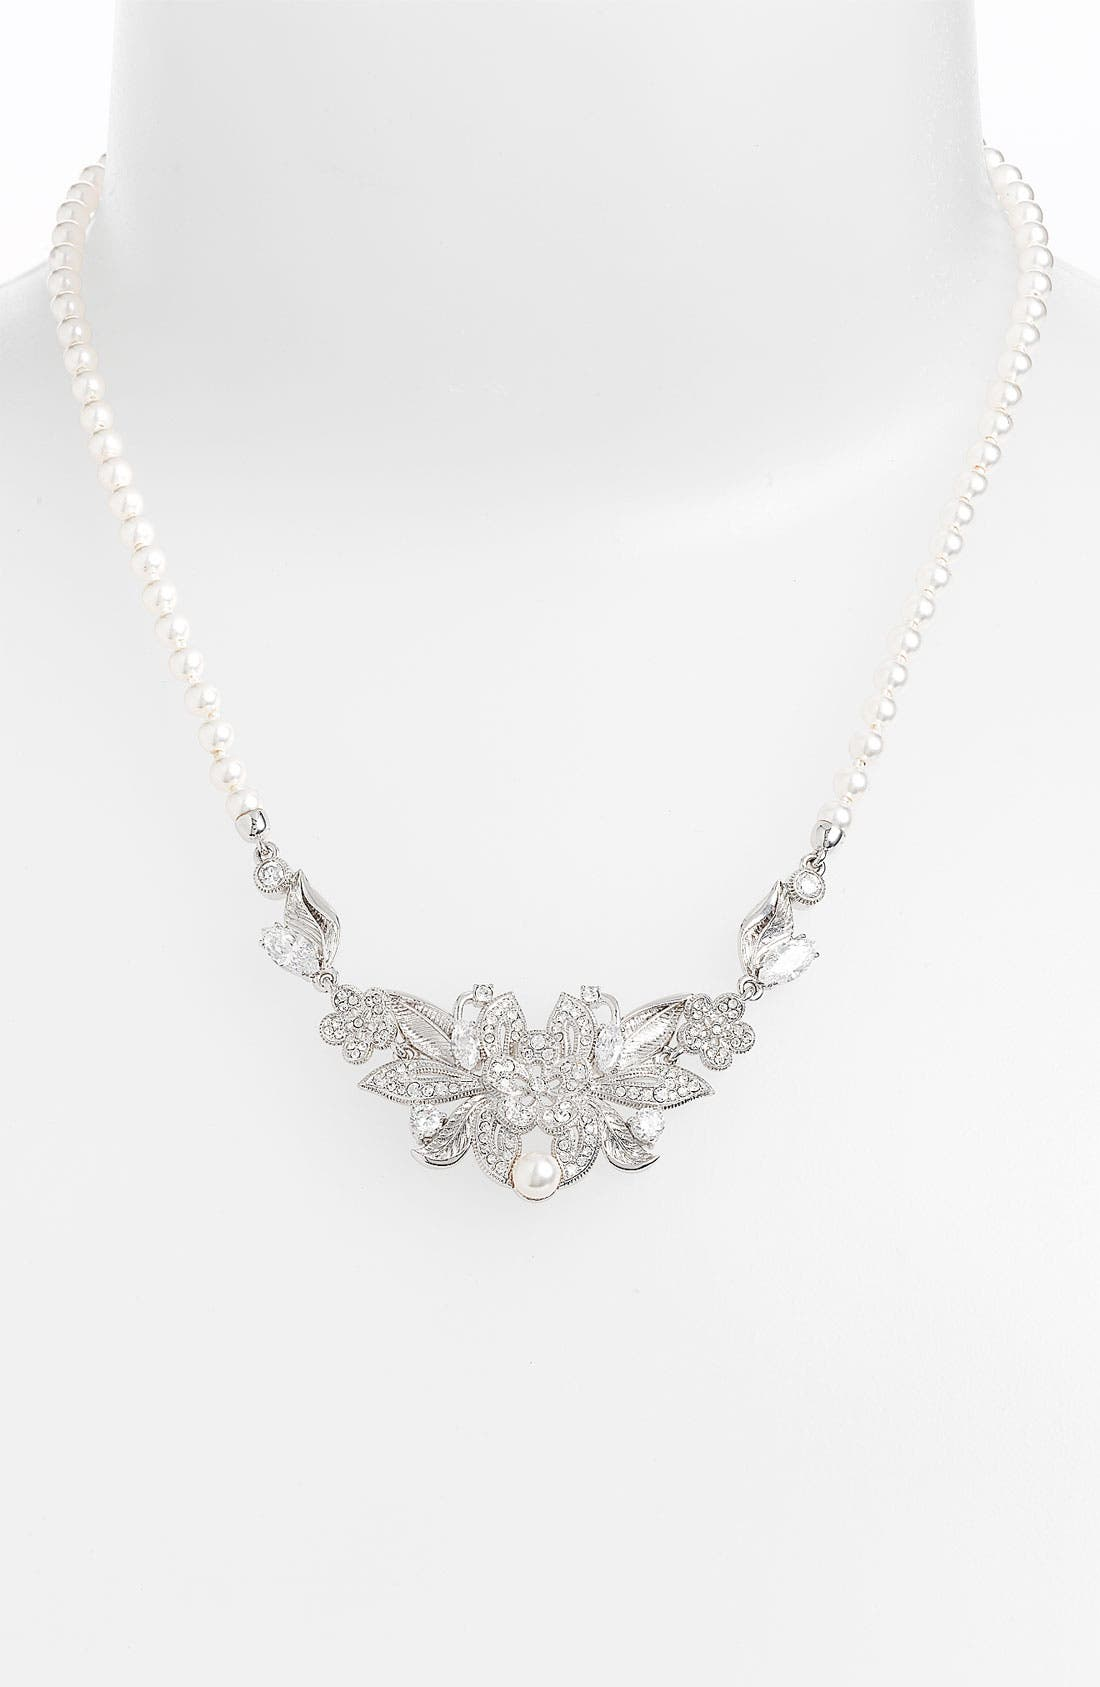 Alternate Image 1 Selected - Nadri Frontal Necklace (Nordstrom Exclusive)